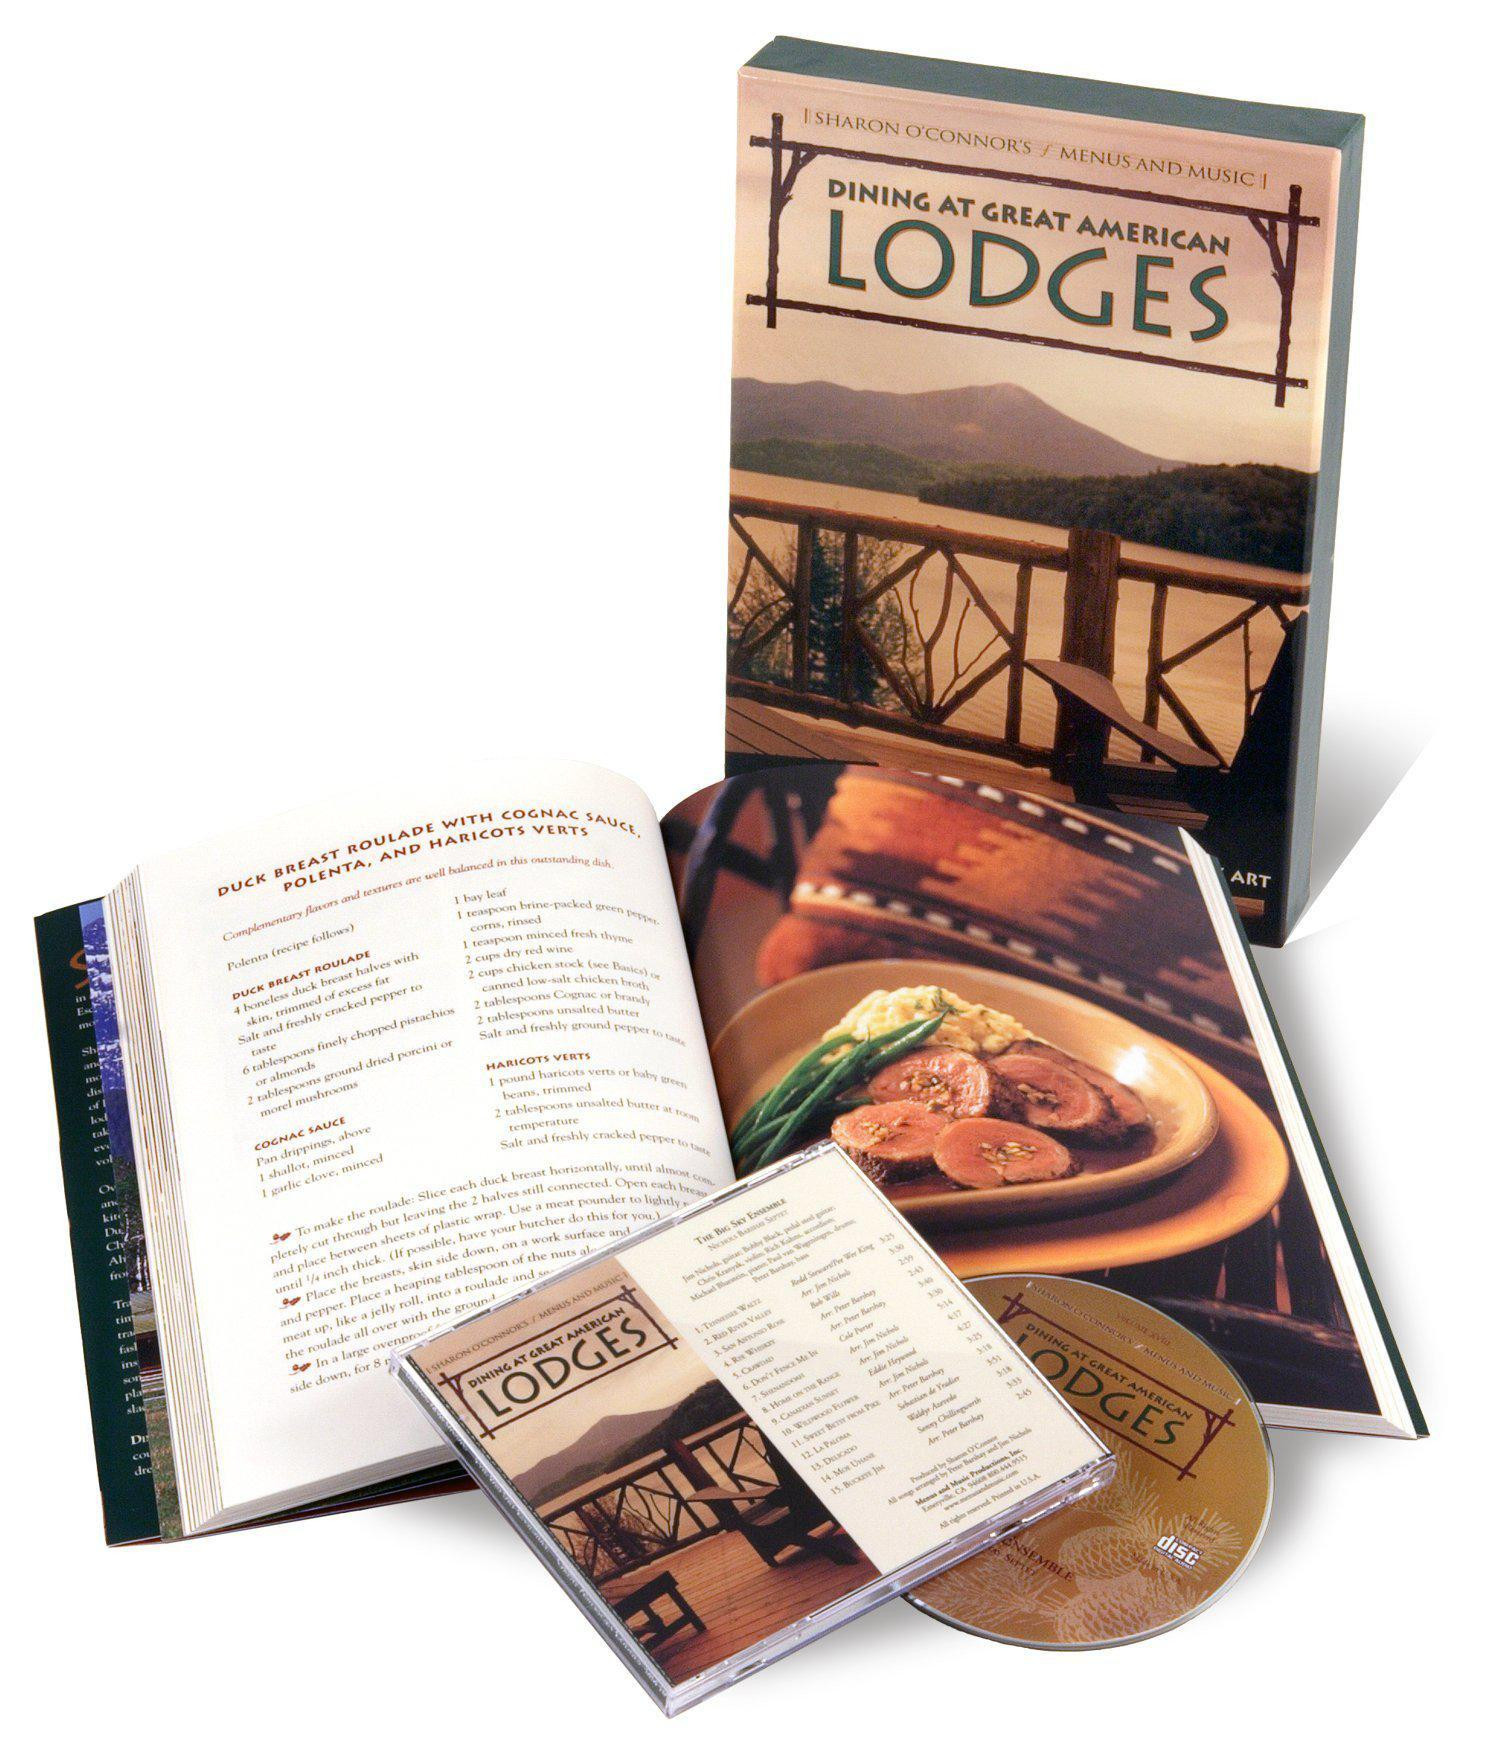 Dining at Great American Lodges - American Cookbook with Music-Book-Menus and Music-Top Notch Gift Shop